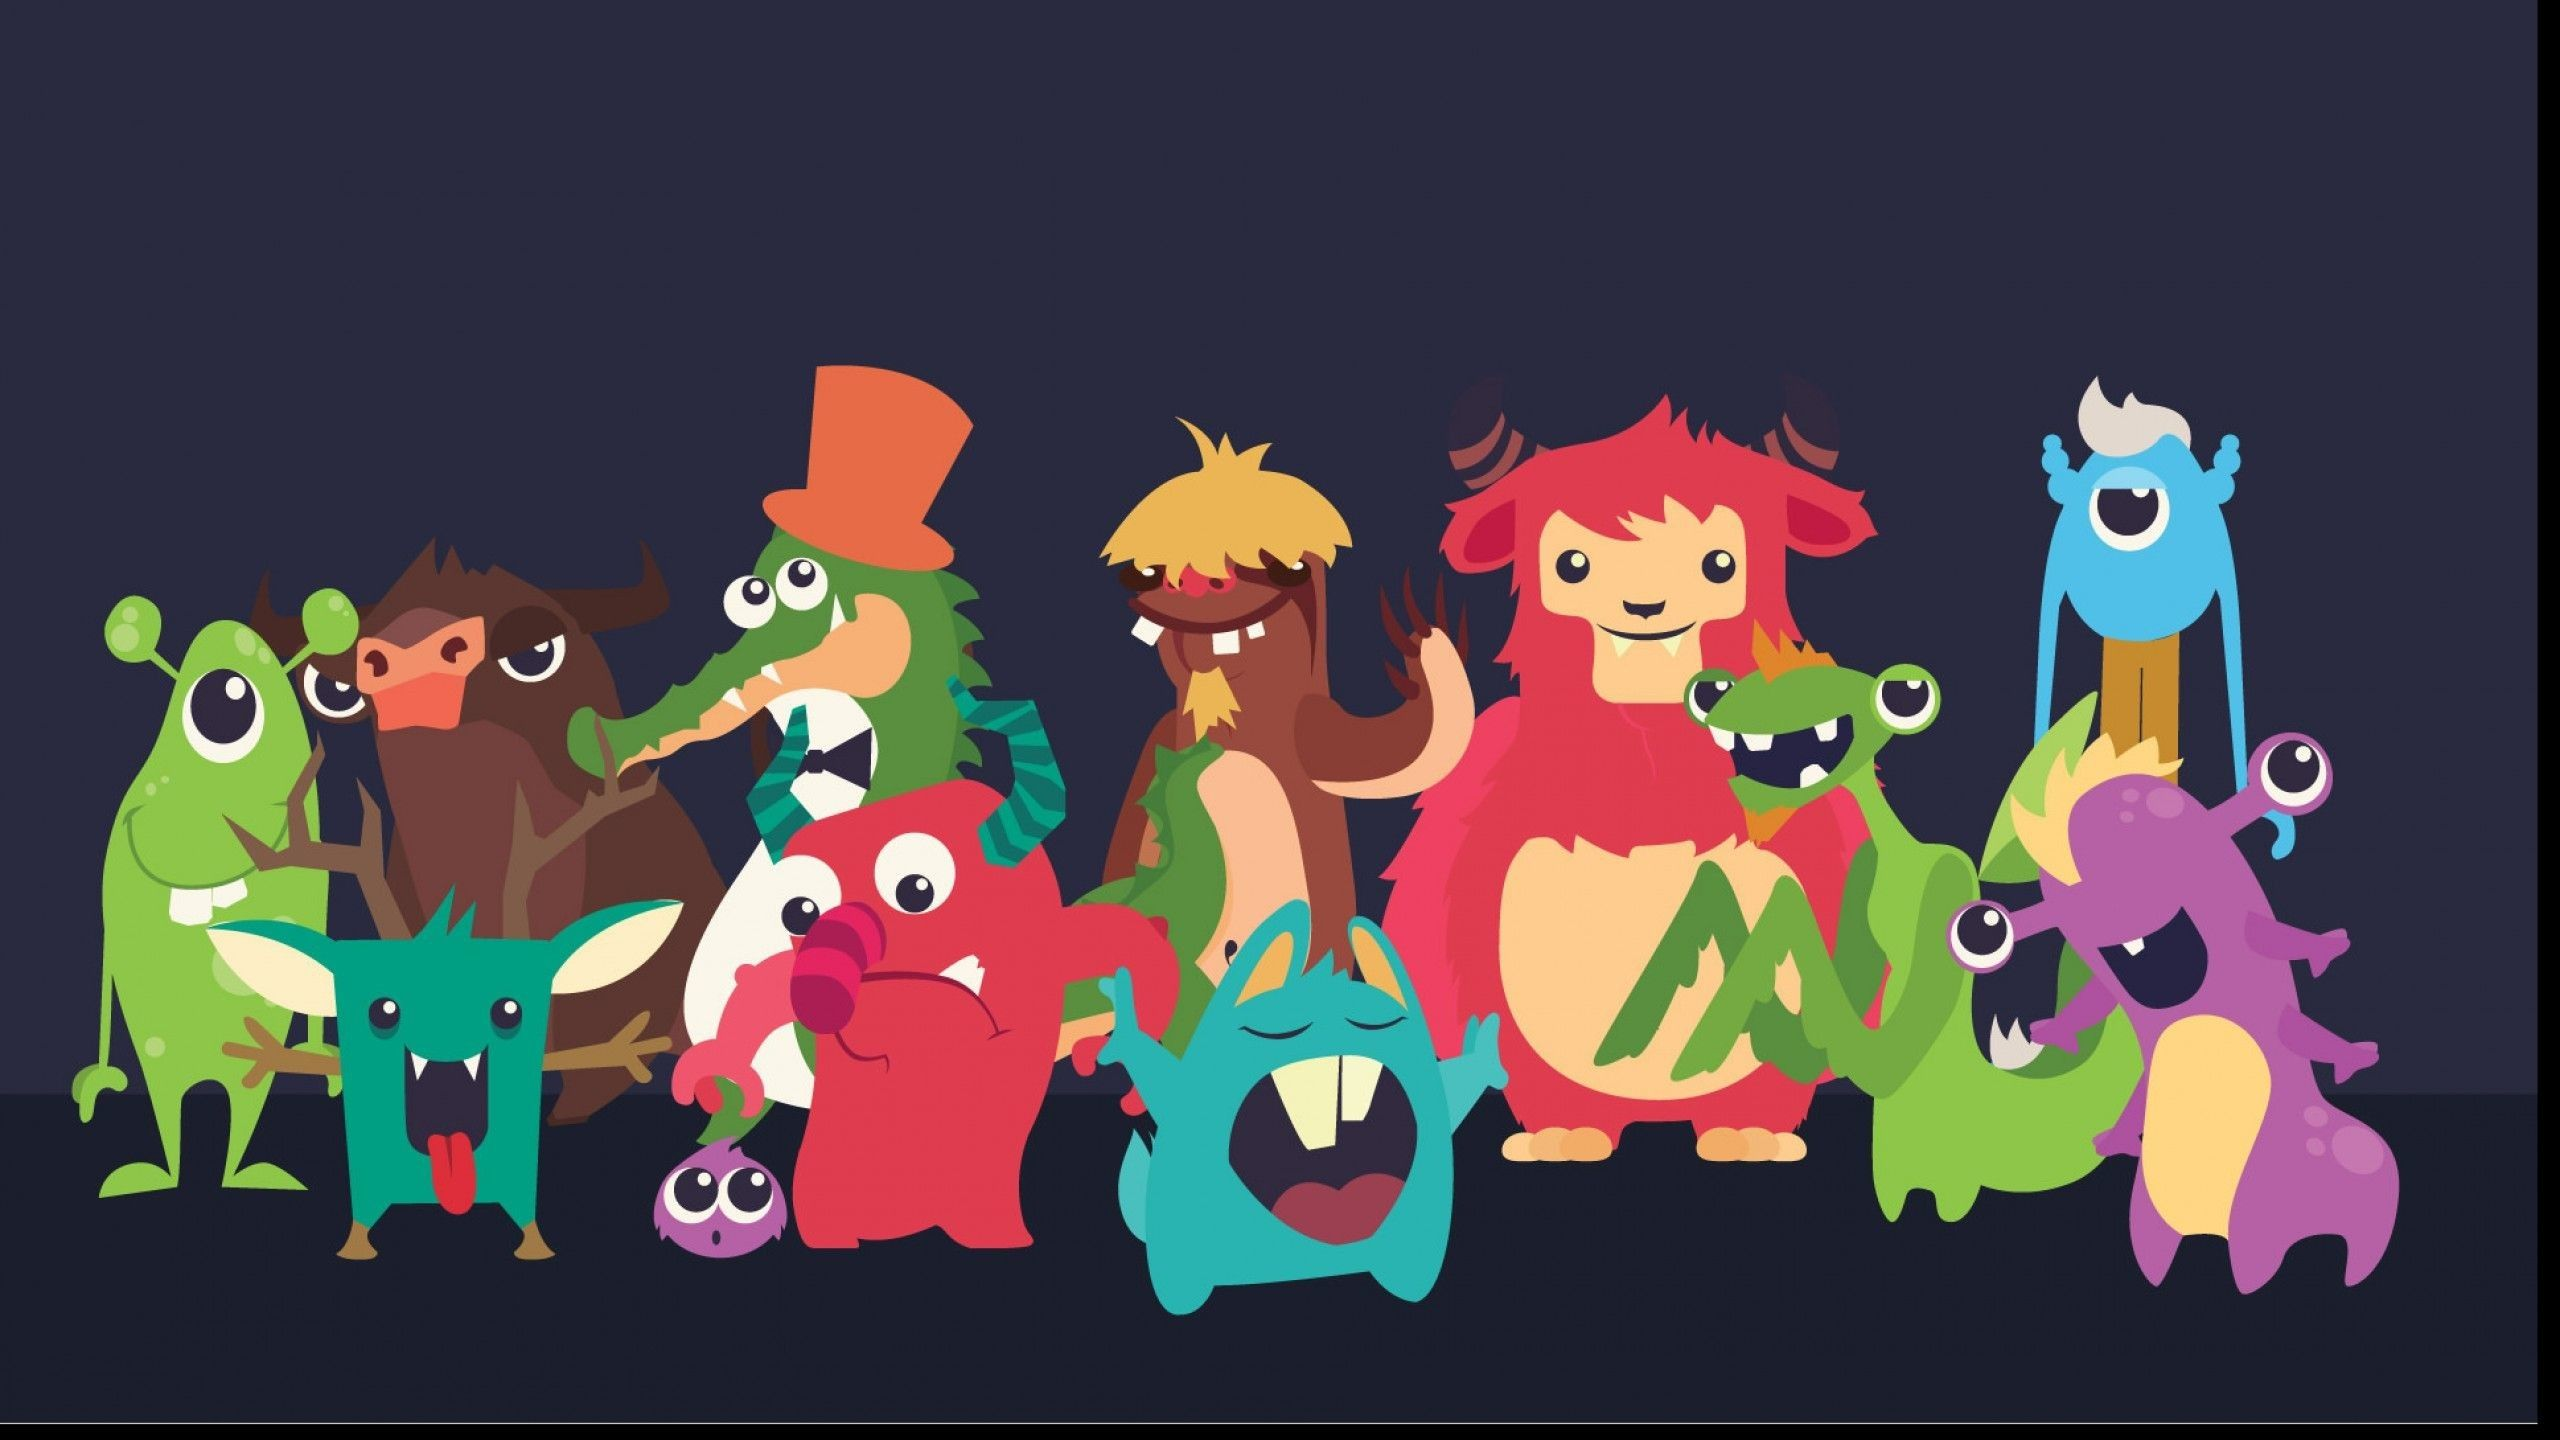 2560x1440 63+ Cute Monster Wallpapers on WallpaperPlay